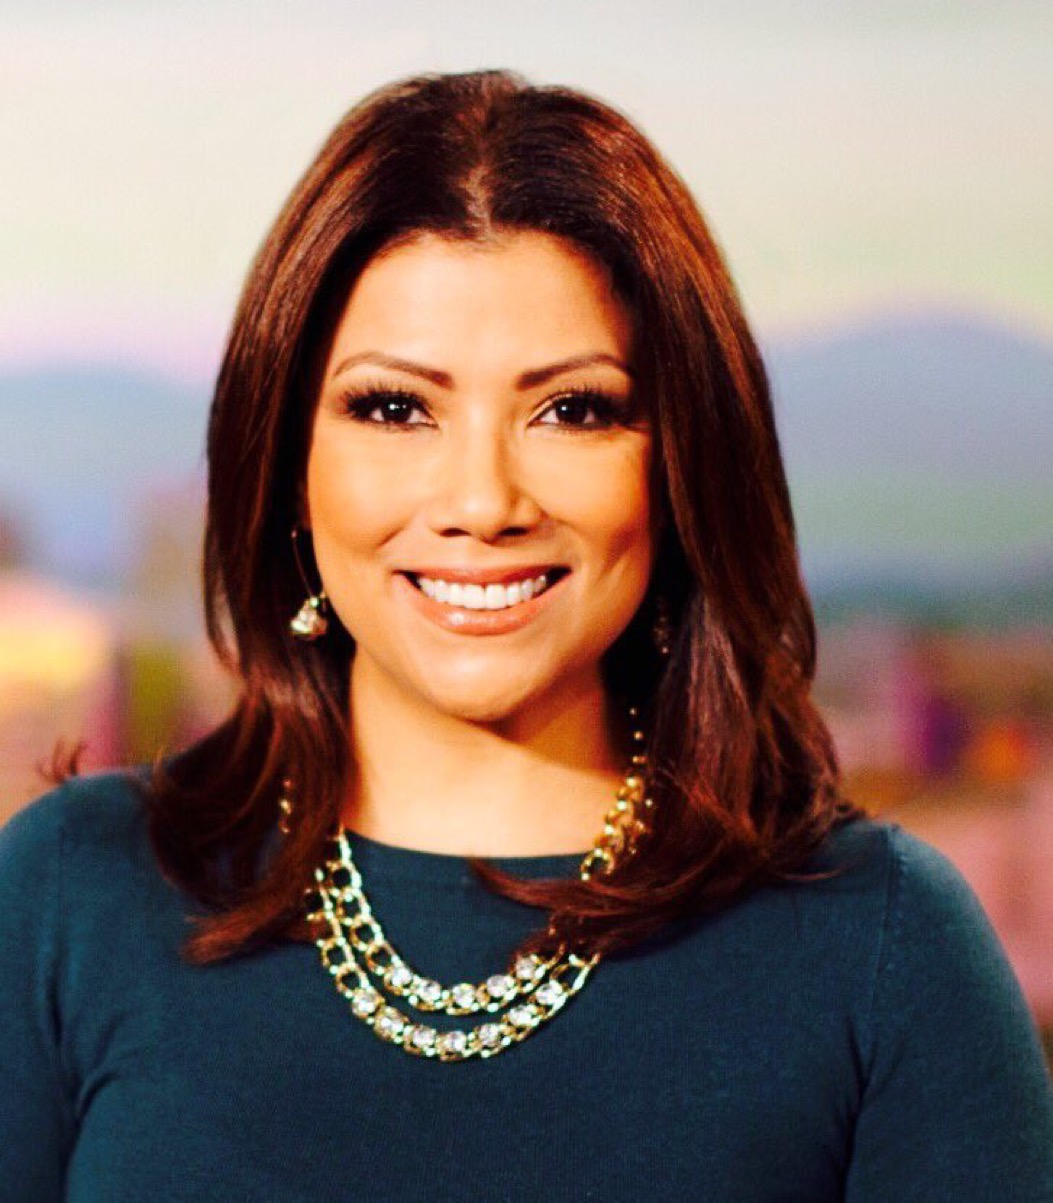 Elsa Ramon - Elsa Ramon is a two-time Emmy award-winning veteran television journalist with 21 years of experience working in the country's top television markets. Elsa most recently served as an Anchor/Reporter for CBS in Los Angeles, and left in May of 2018 to start her own show, Adventures In Crypto. Since then, Elsa has traveled the world showing how people in other countries, as well as the United States, are exploring and incorporating cryptocurrency and blockchain technology into our everyday lives. Elsa is a Los Angeles native, who is also half Texan by her dad. She has a daughter, Isabella and son, Zevi.